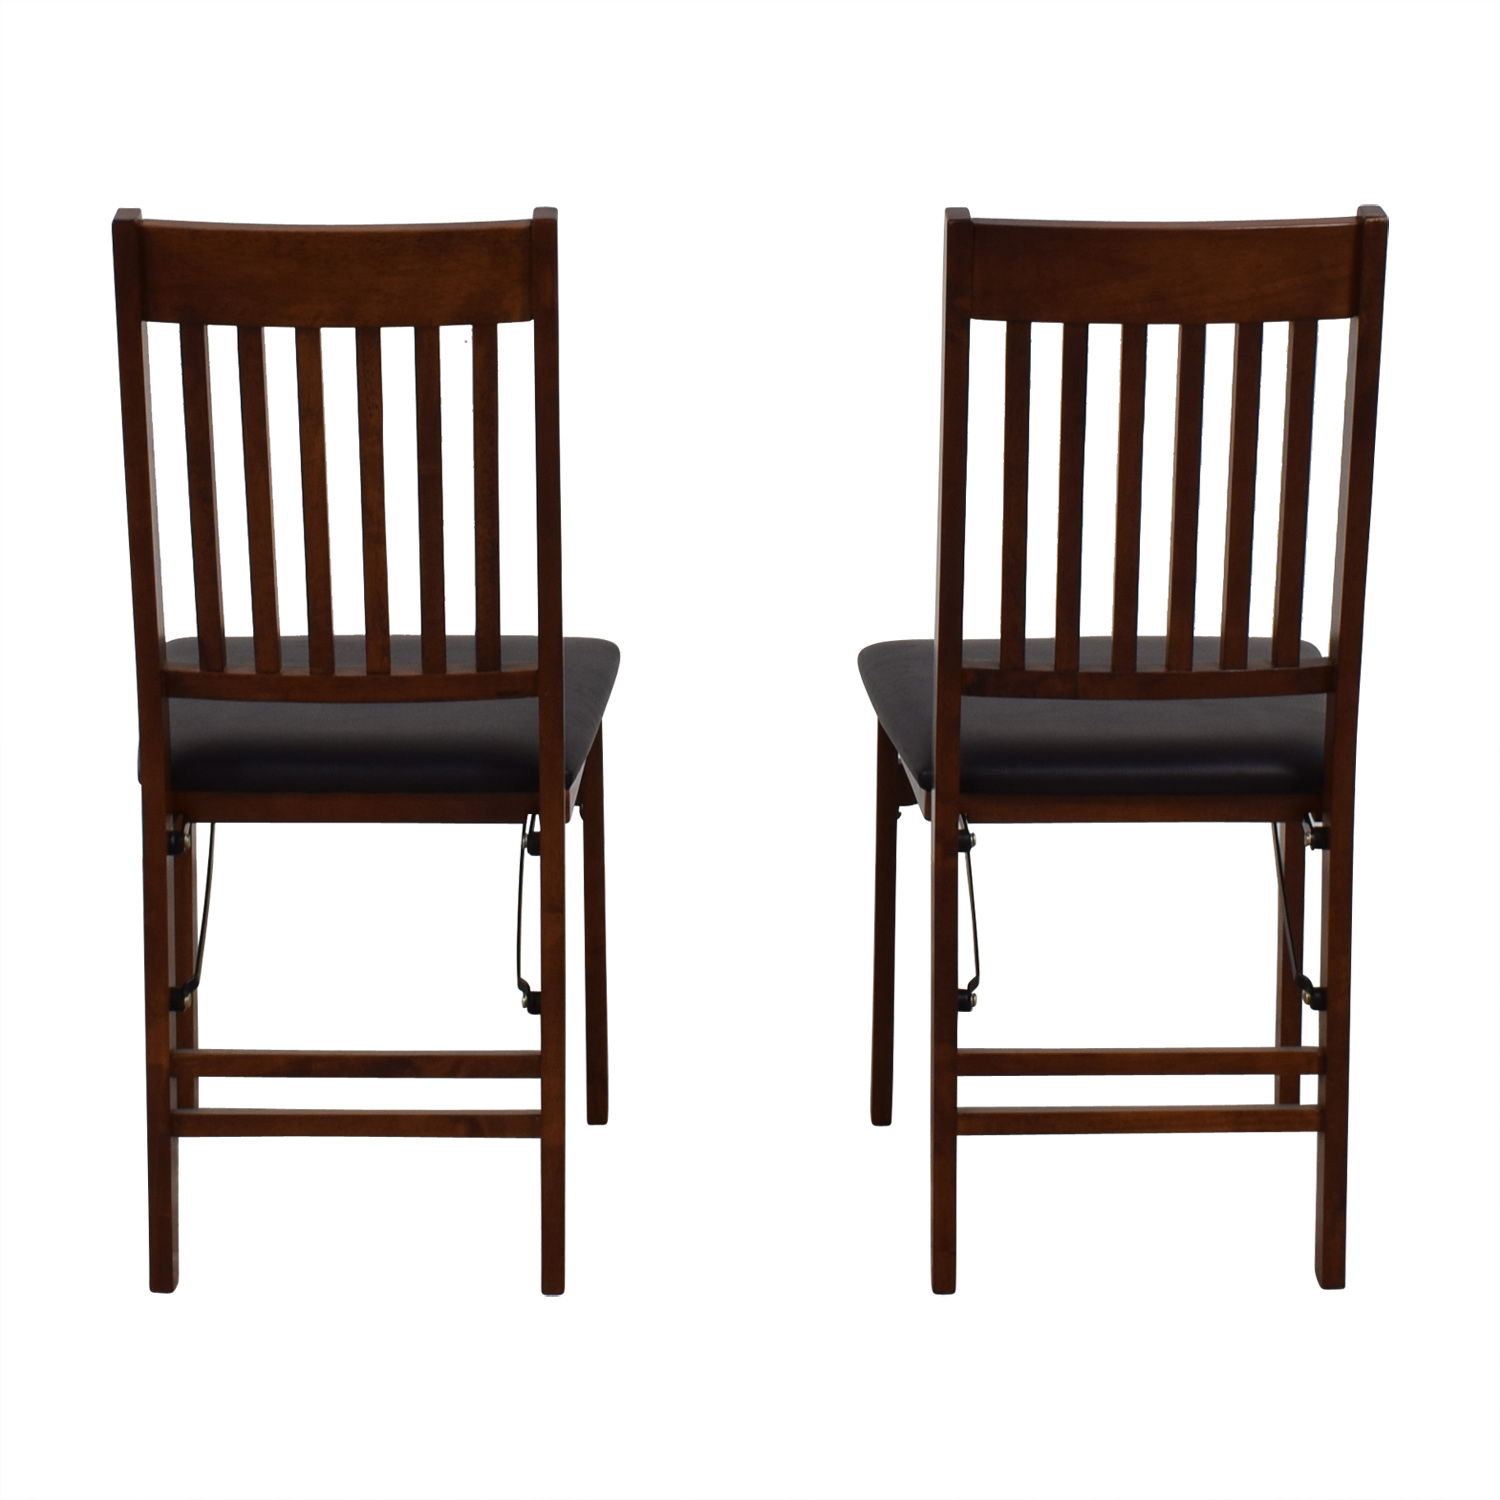 55 Off Linon Home Decor Linon Home Decor Mission Back Wood Folding Chairs Chairs